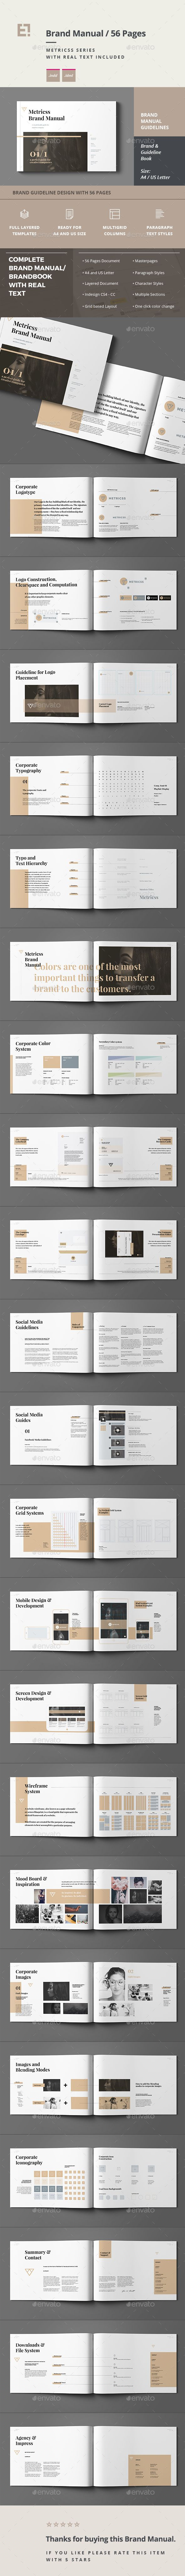 Brand Manual Template InDesign INDD. Download here: https://graphicriver.net/item/brand-manual-/17128777?ref=ksioks